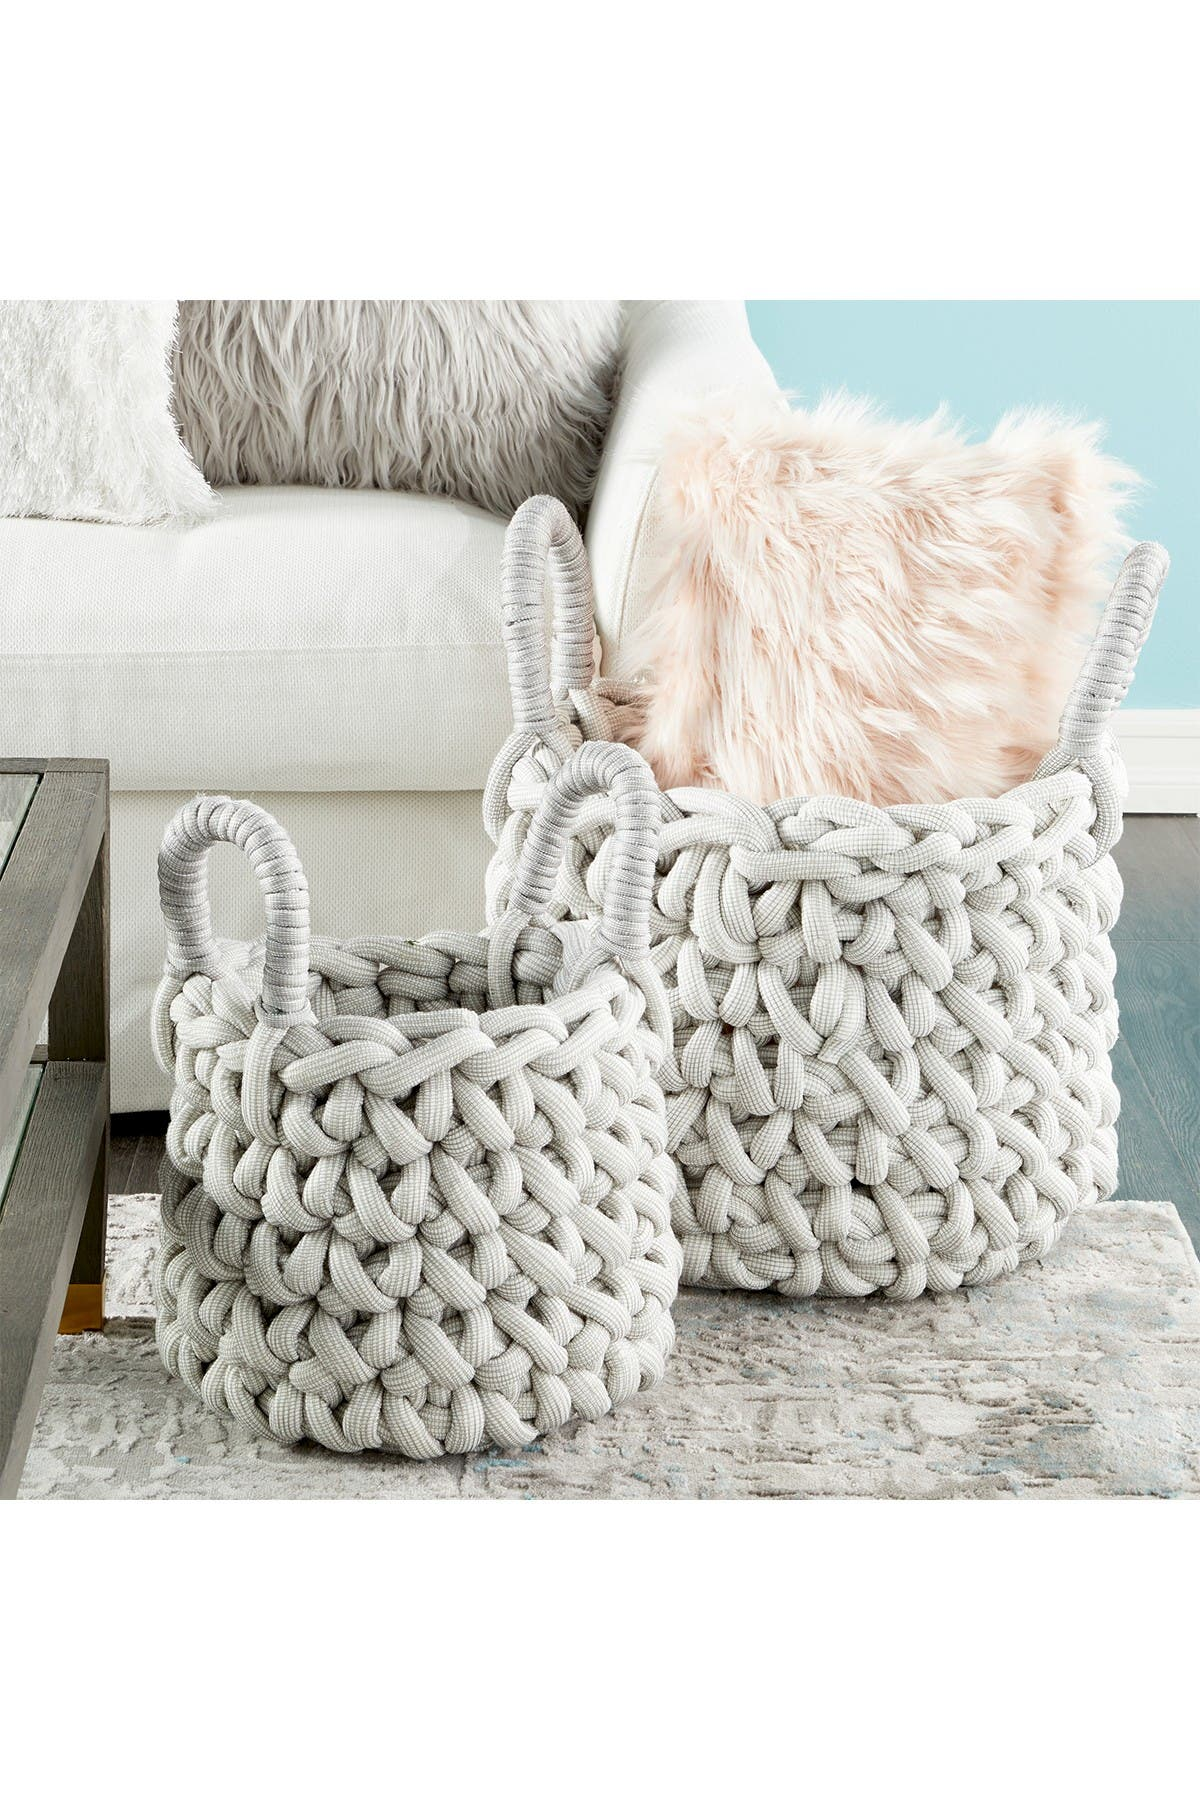 Image of CosmoLiving by Cosmopolitan Large Round Handmade Dove Gray Storage Basket - Set of 2